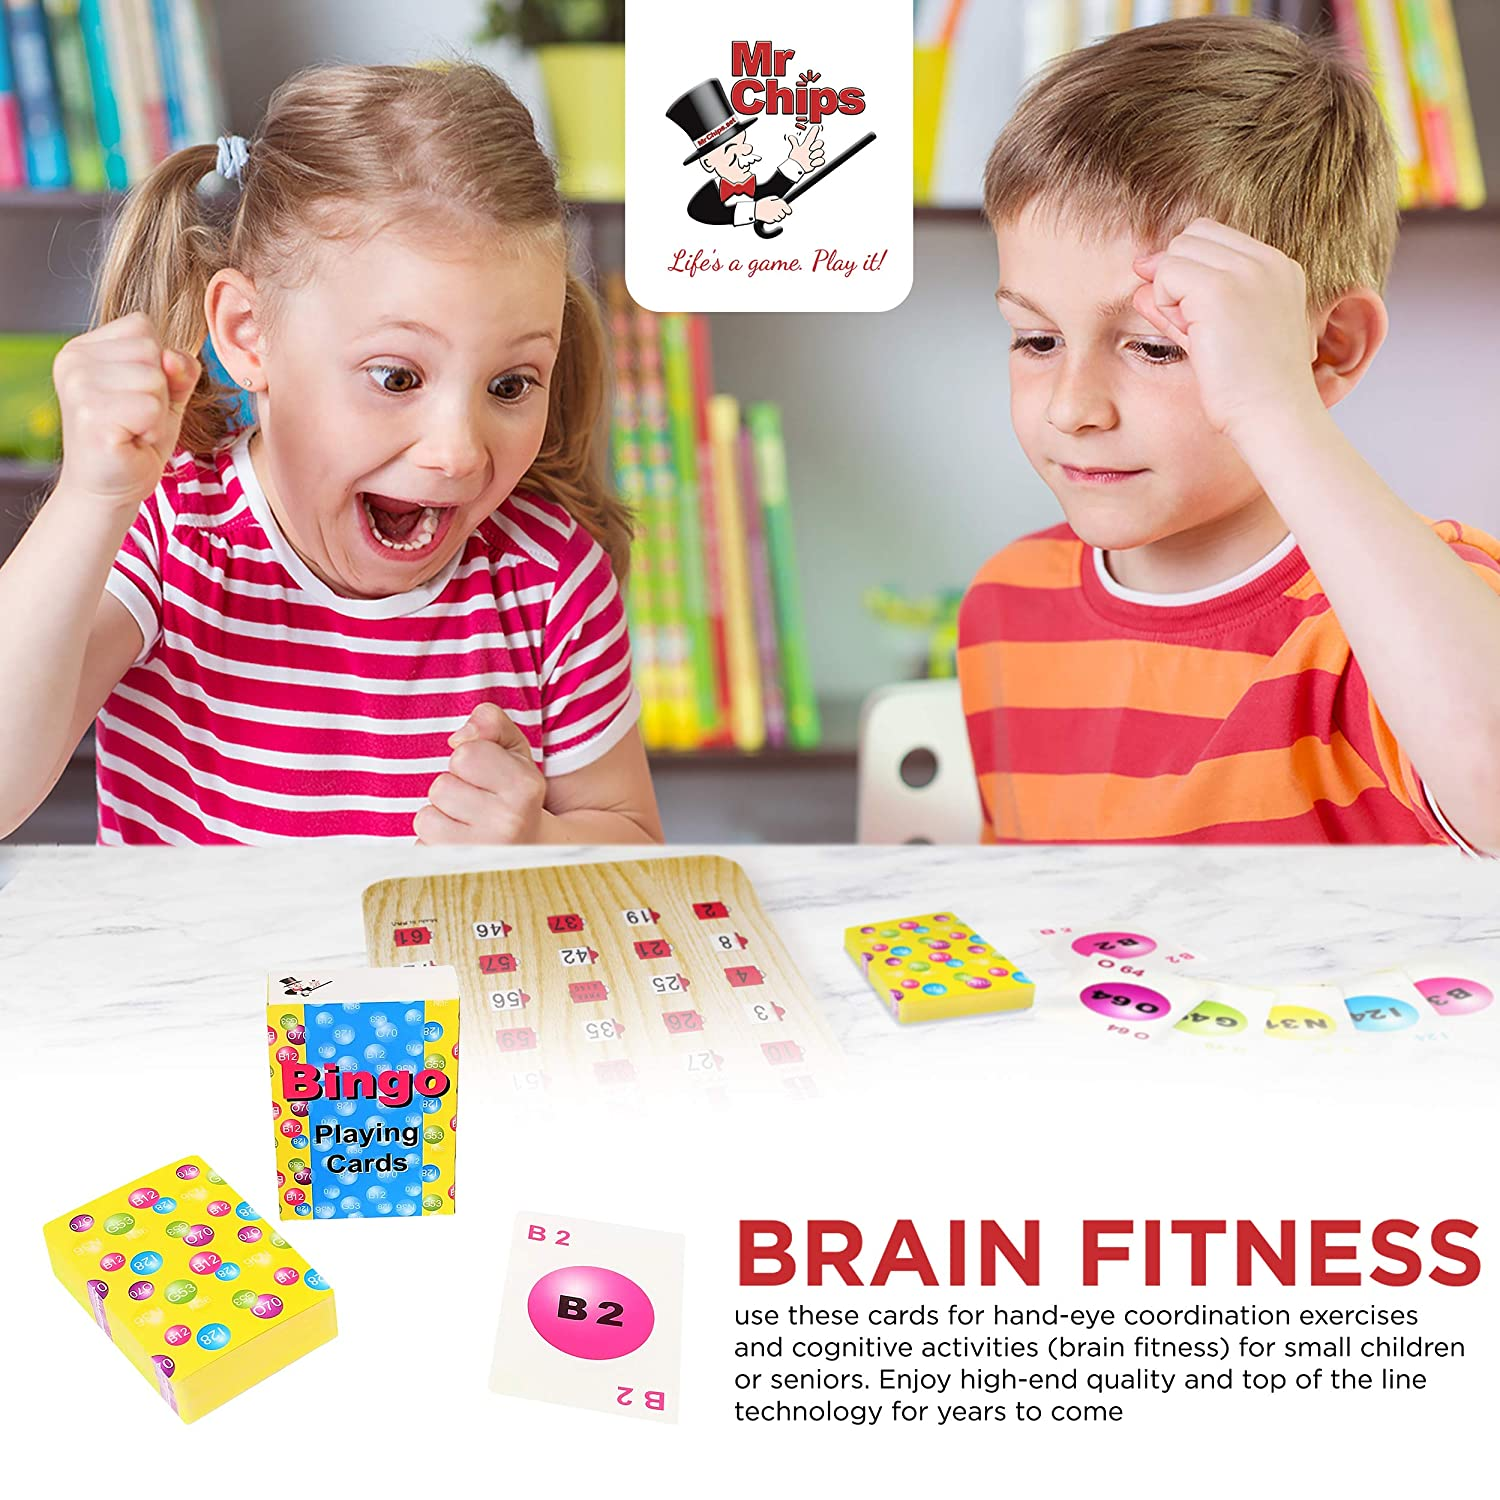 75 Calling Cards and 1 Masterboard Reusable MR CHIPS Bingo Slide Shutter Cards for Senior and Kids Shutter Cards Available in 2 Sets Economy Jam Proof